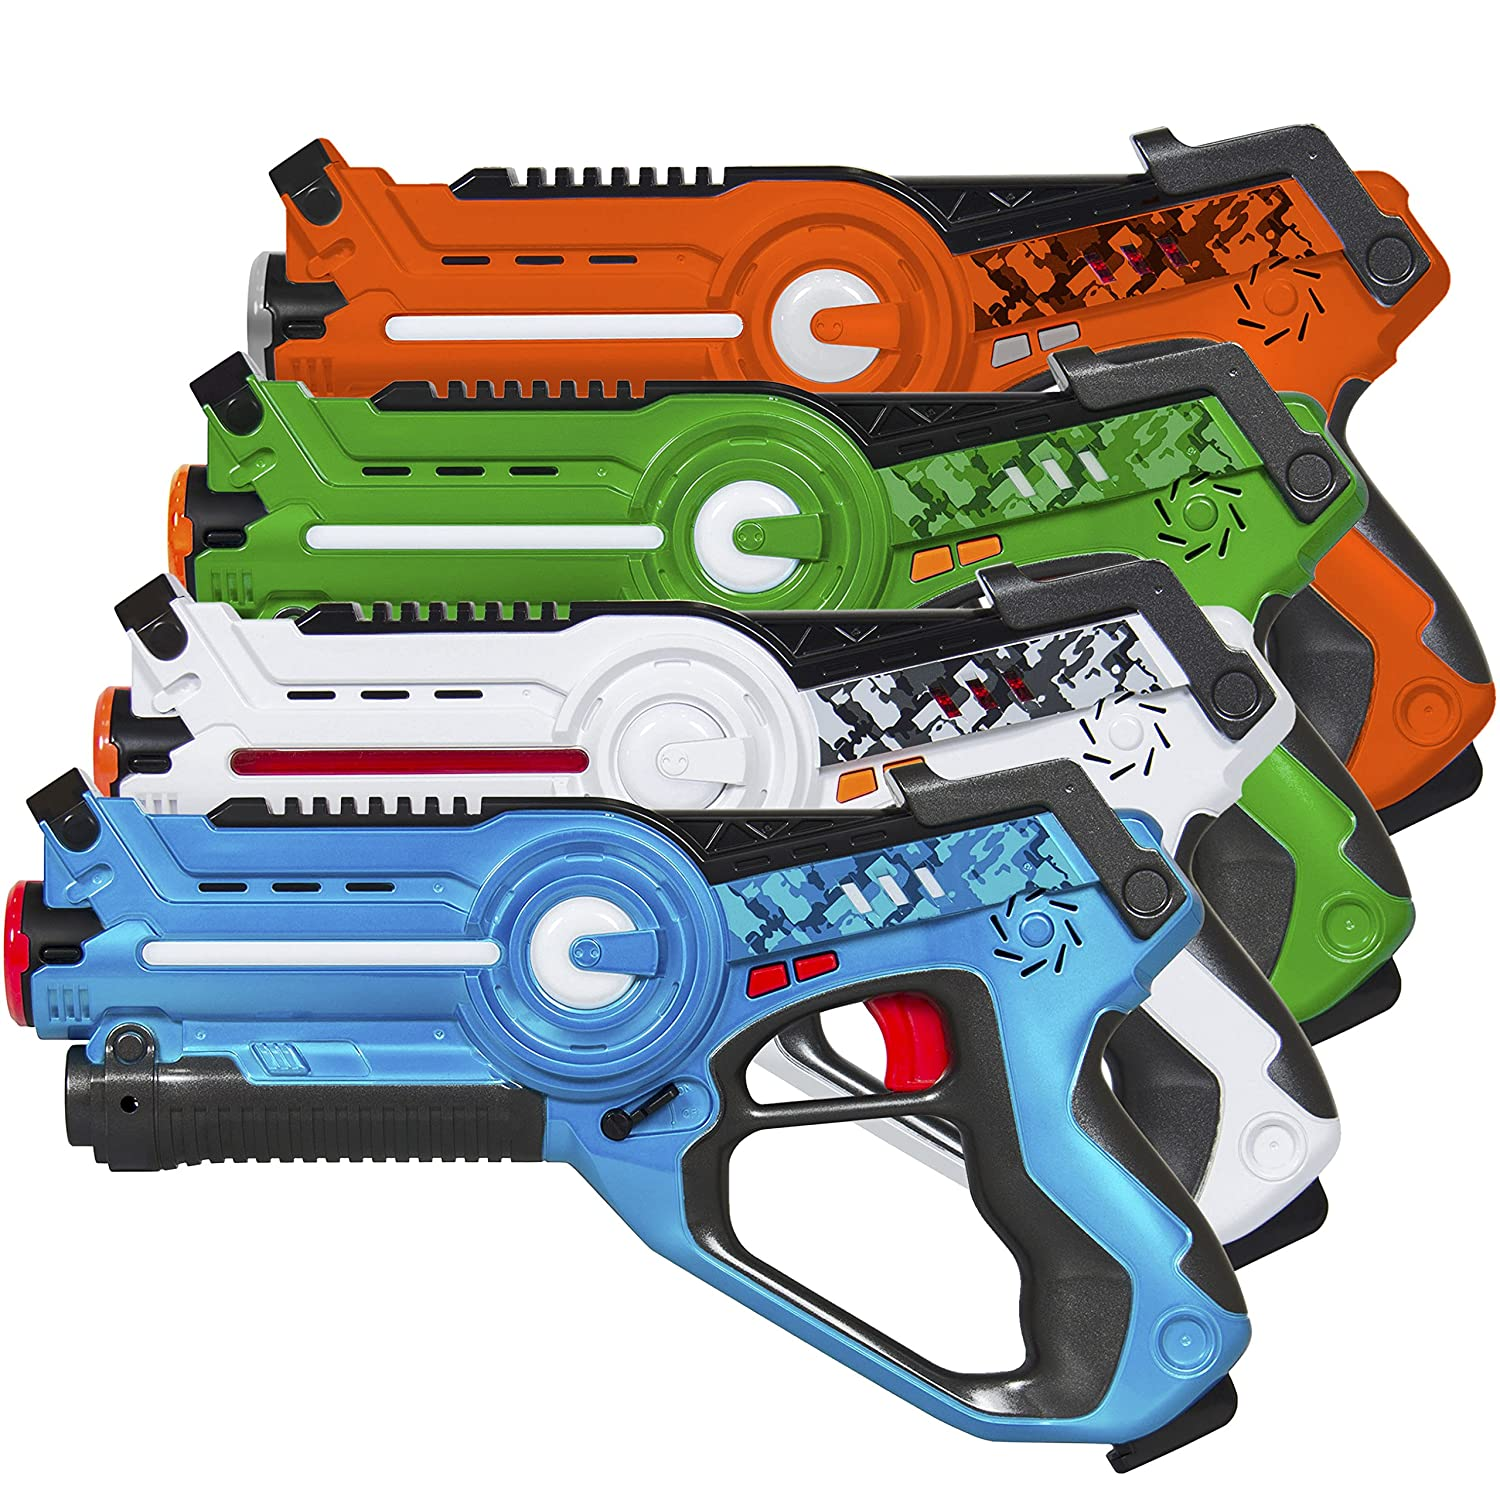 Best Choice Products Infrared Laser Tag Blaster Set for Kids & Adults w/ Multiplayer Mode